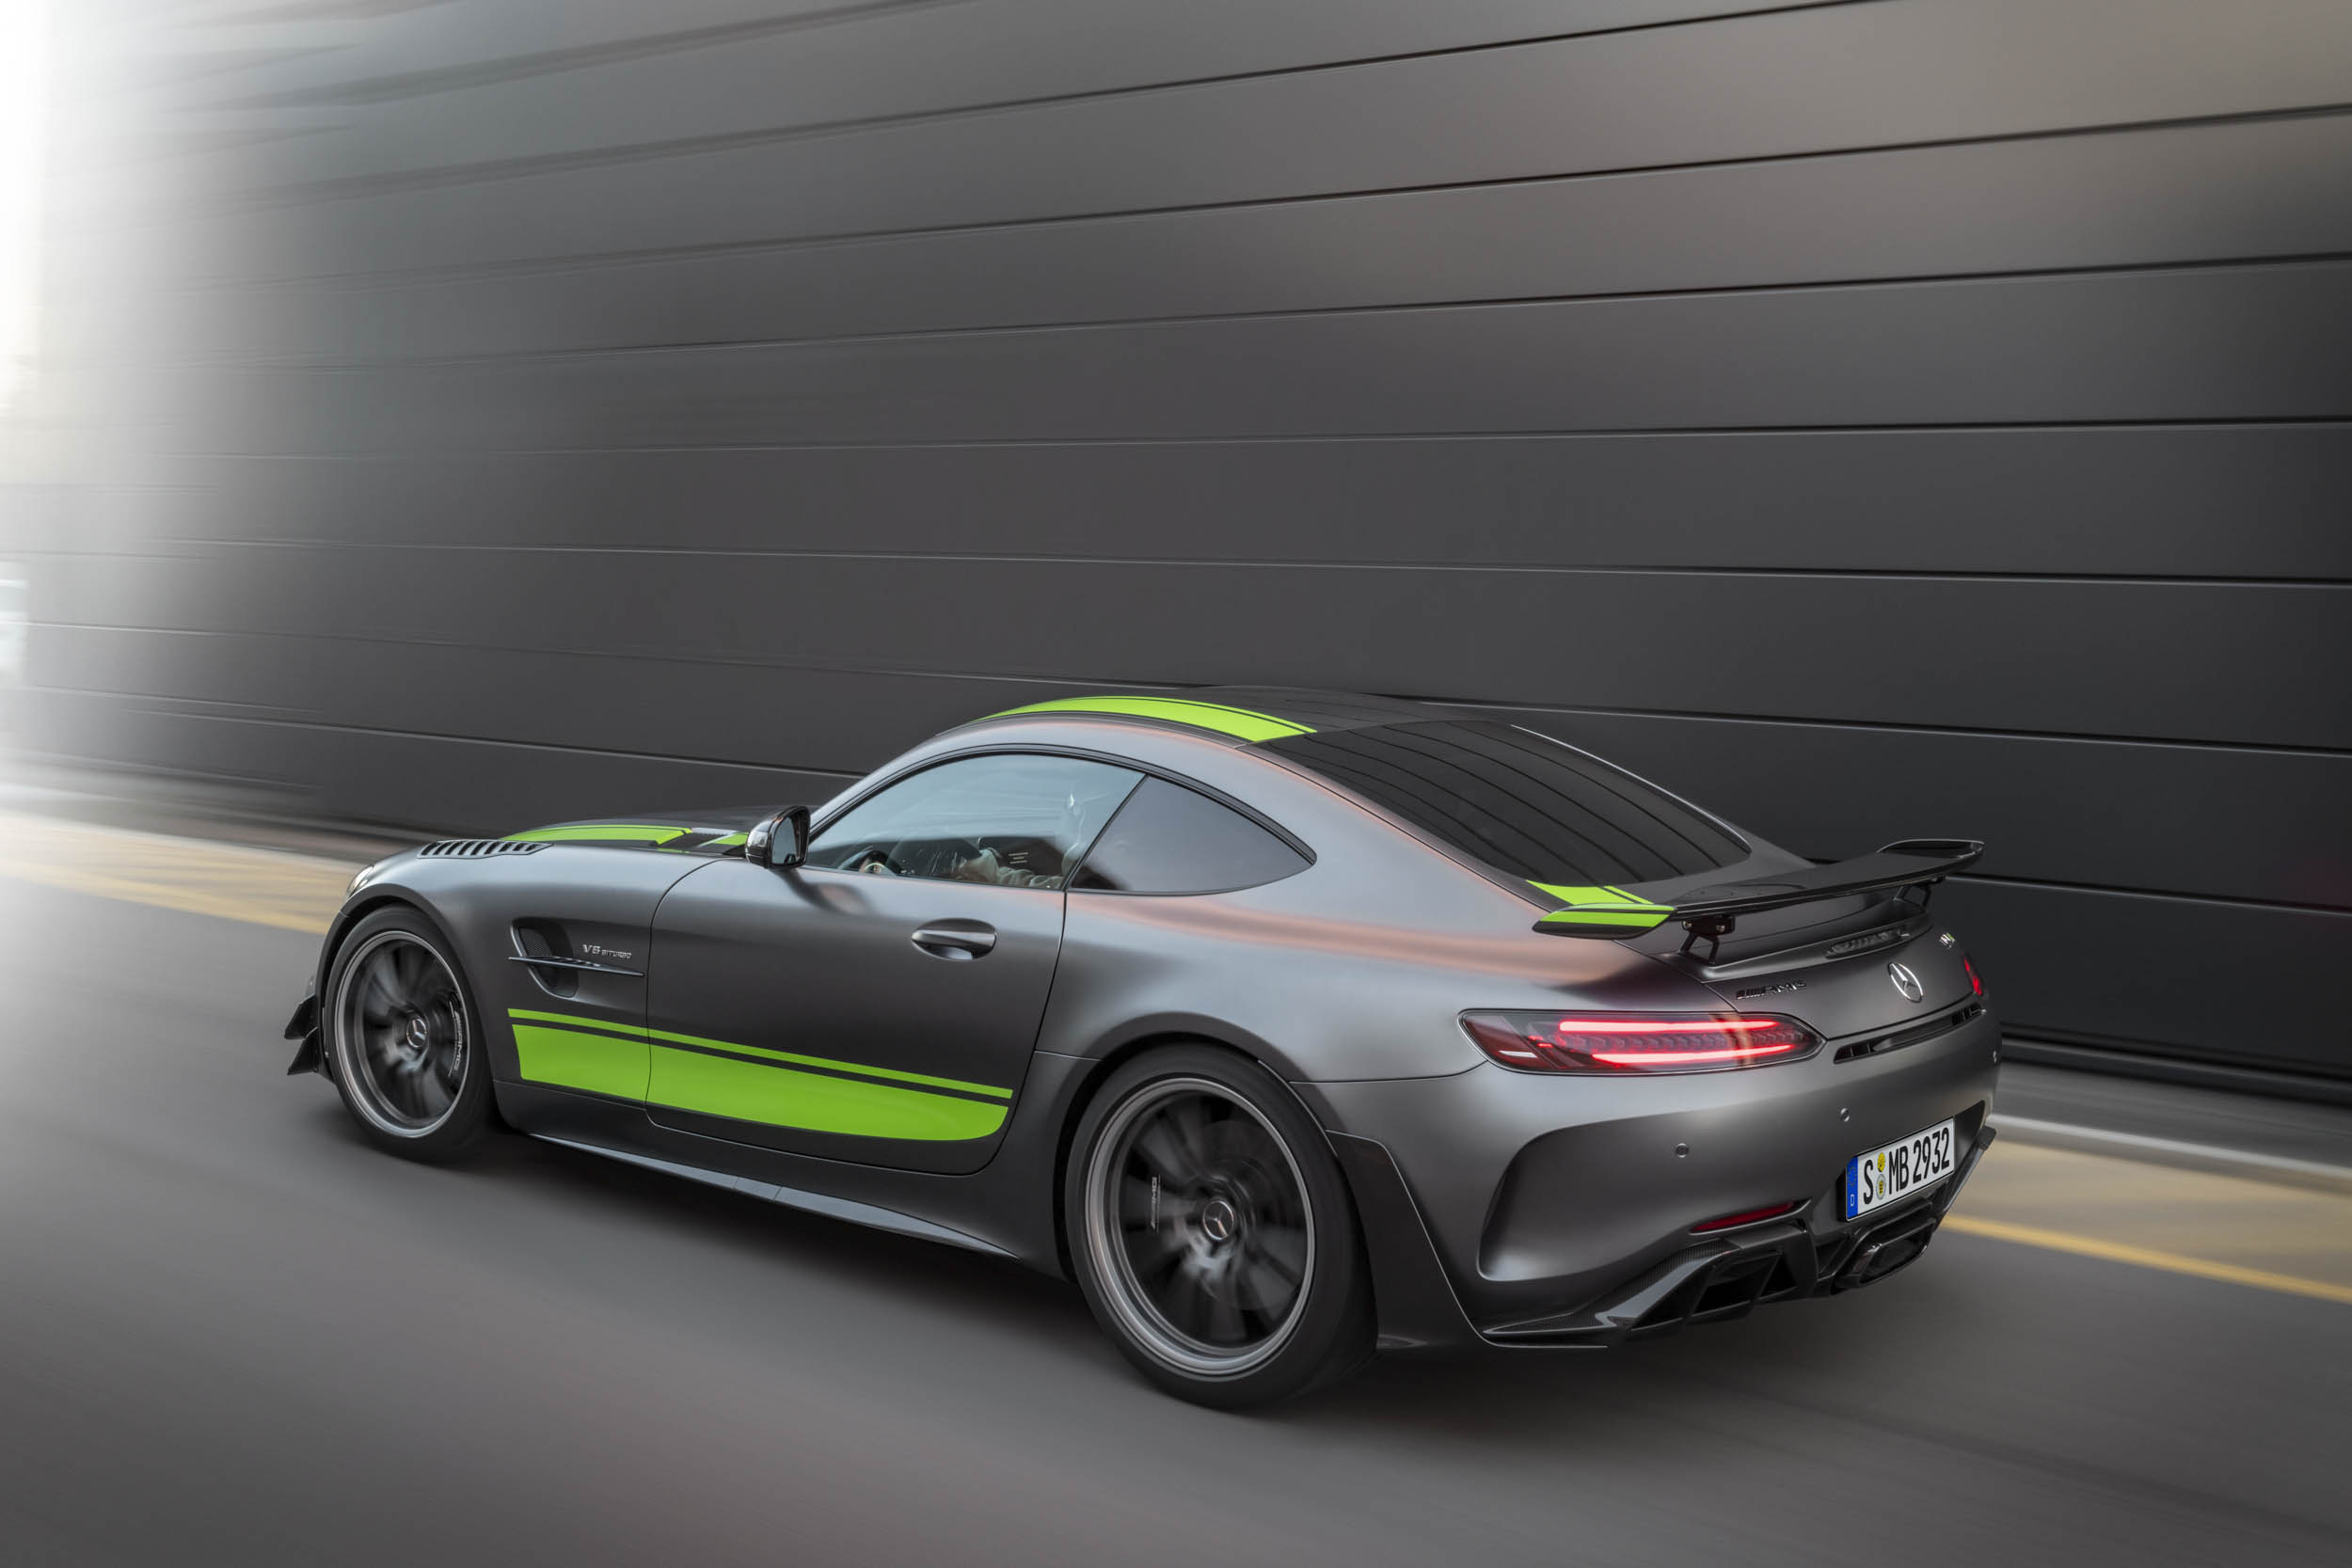 Mercedes-AMG GT R Pro rear 3/4 driving